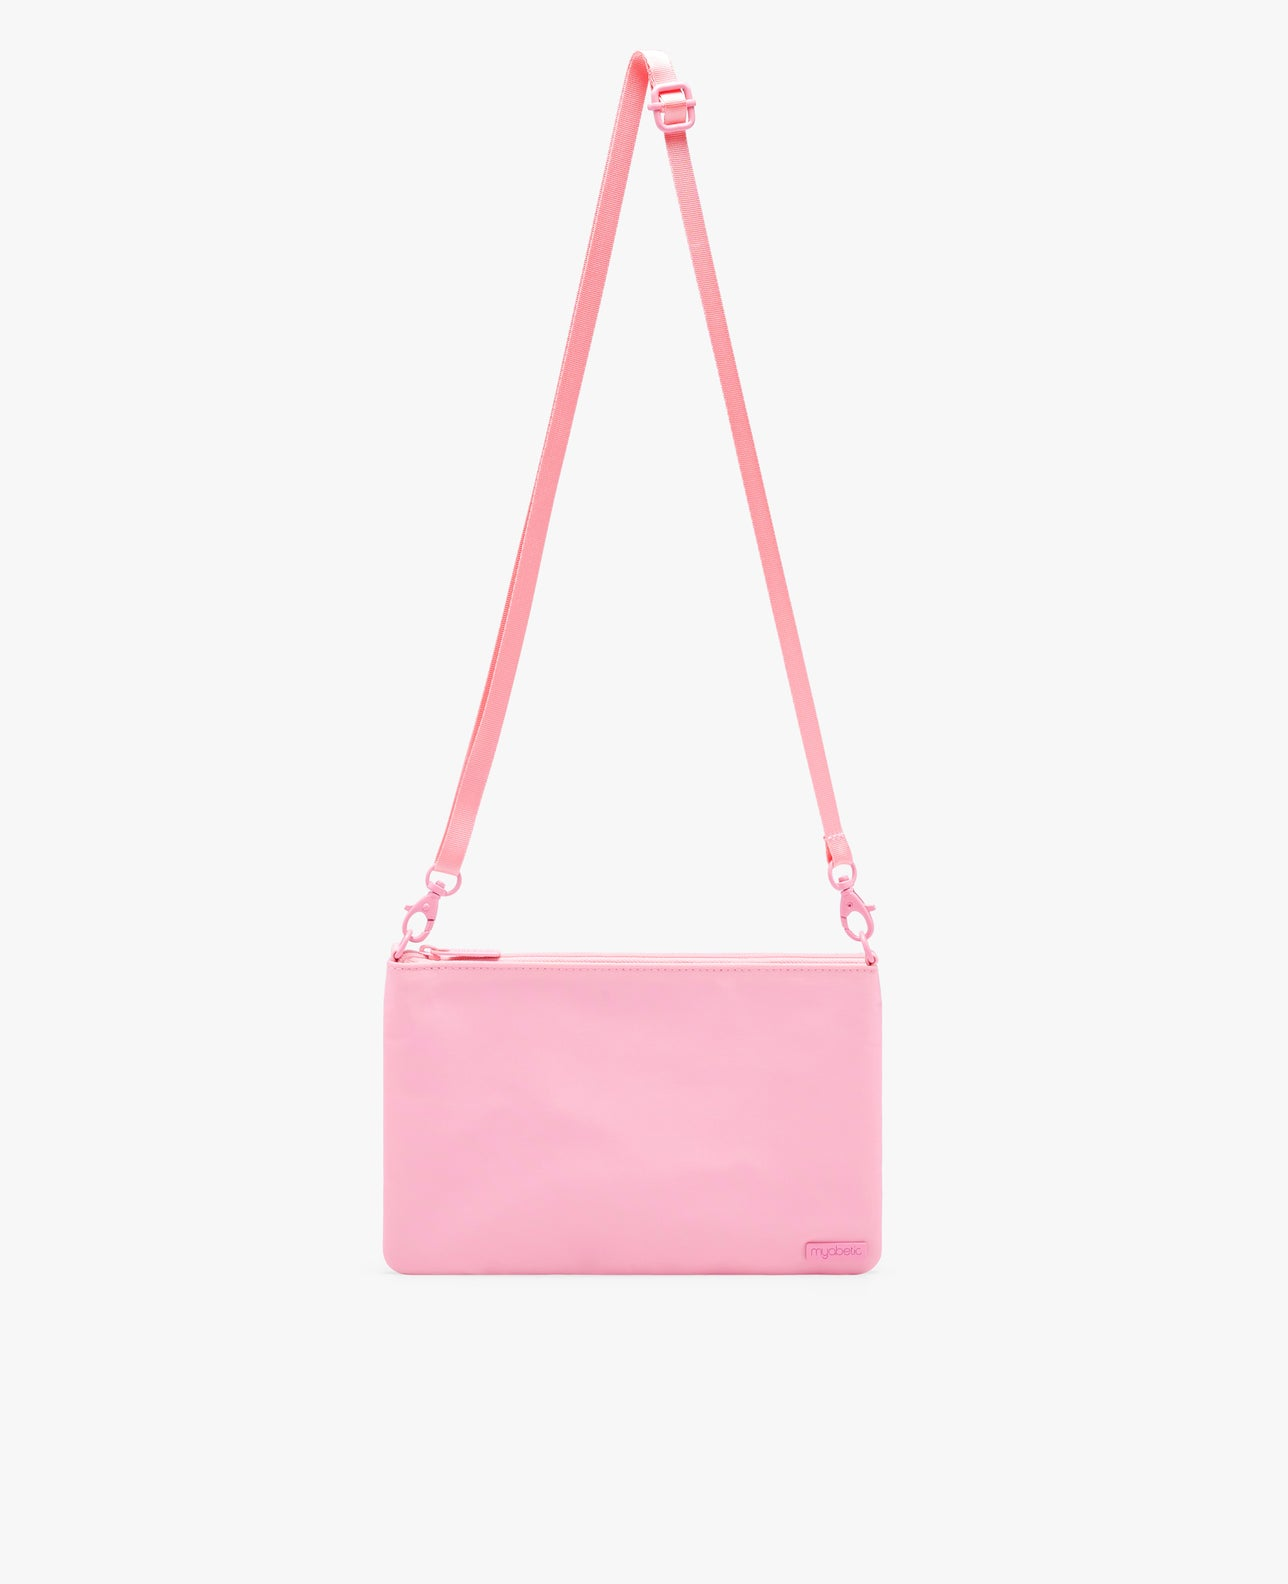 color:blush nylon